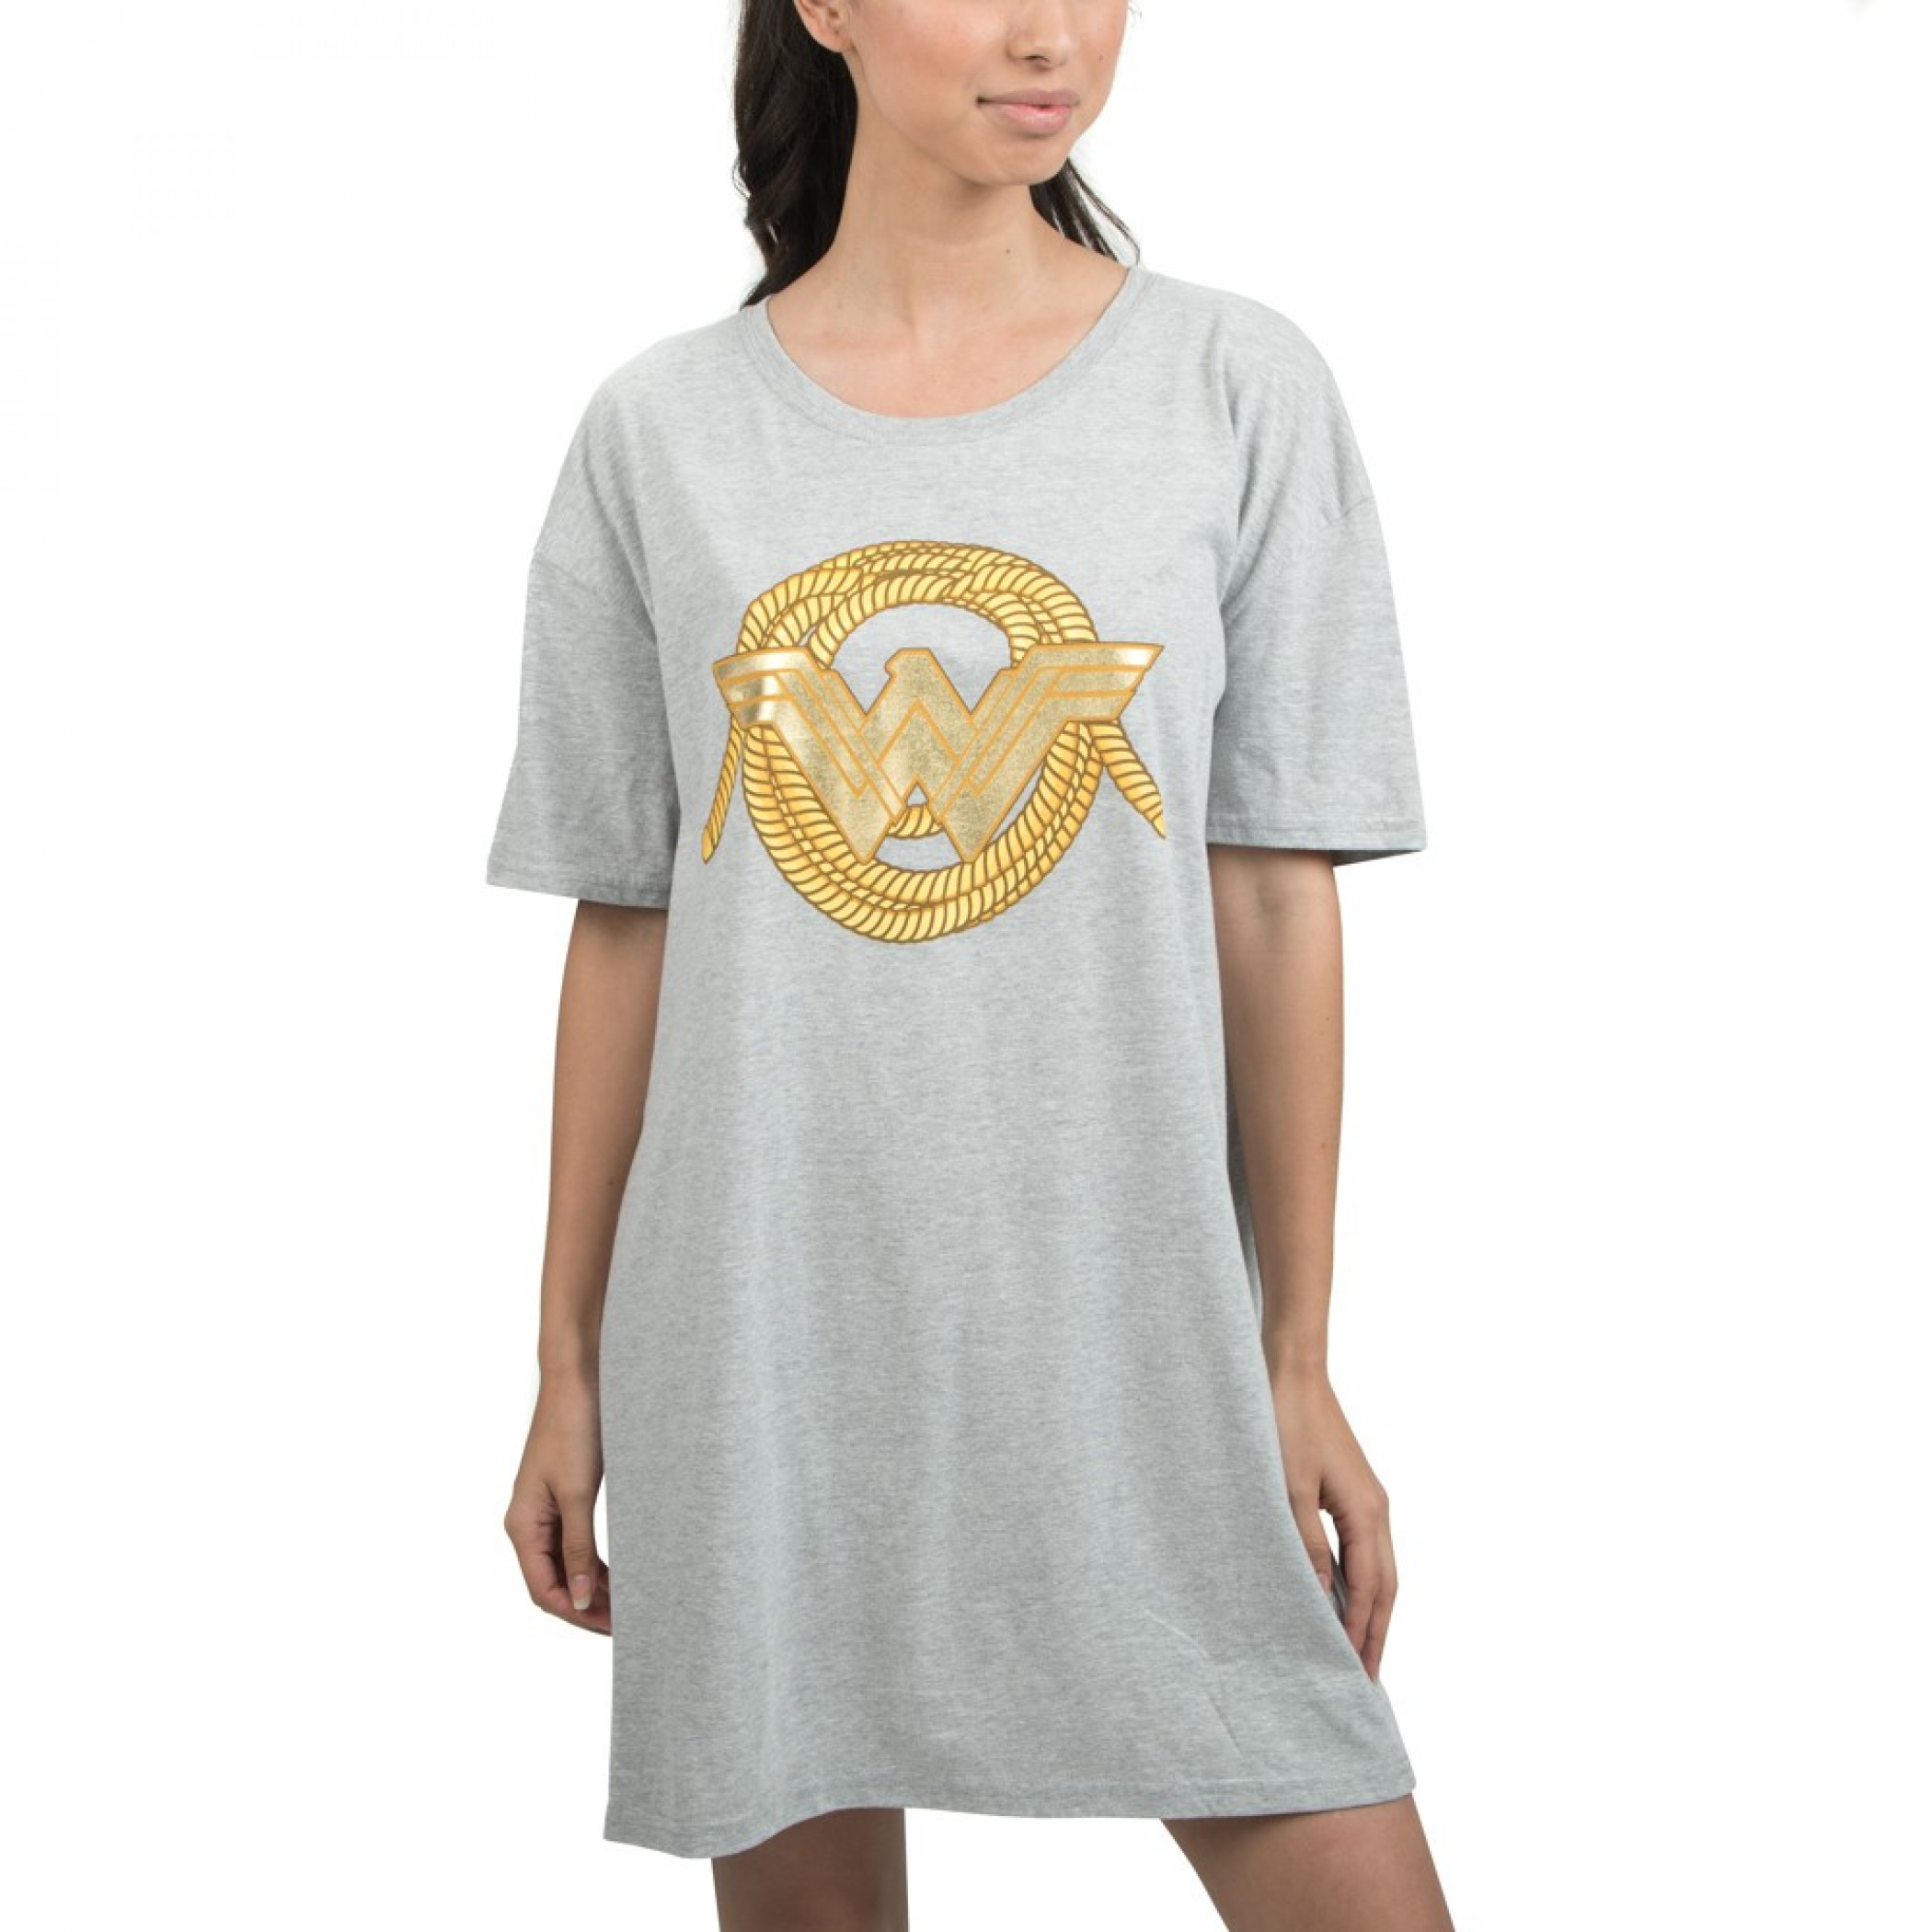 Wonder Women Women's Short Sleeve Night Shirt